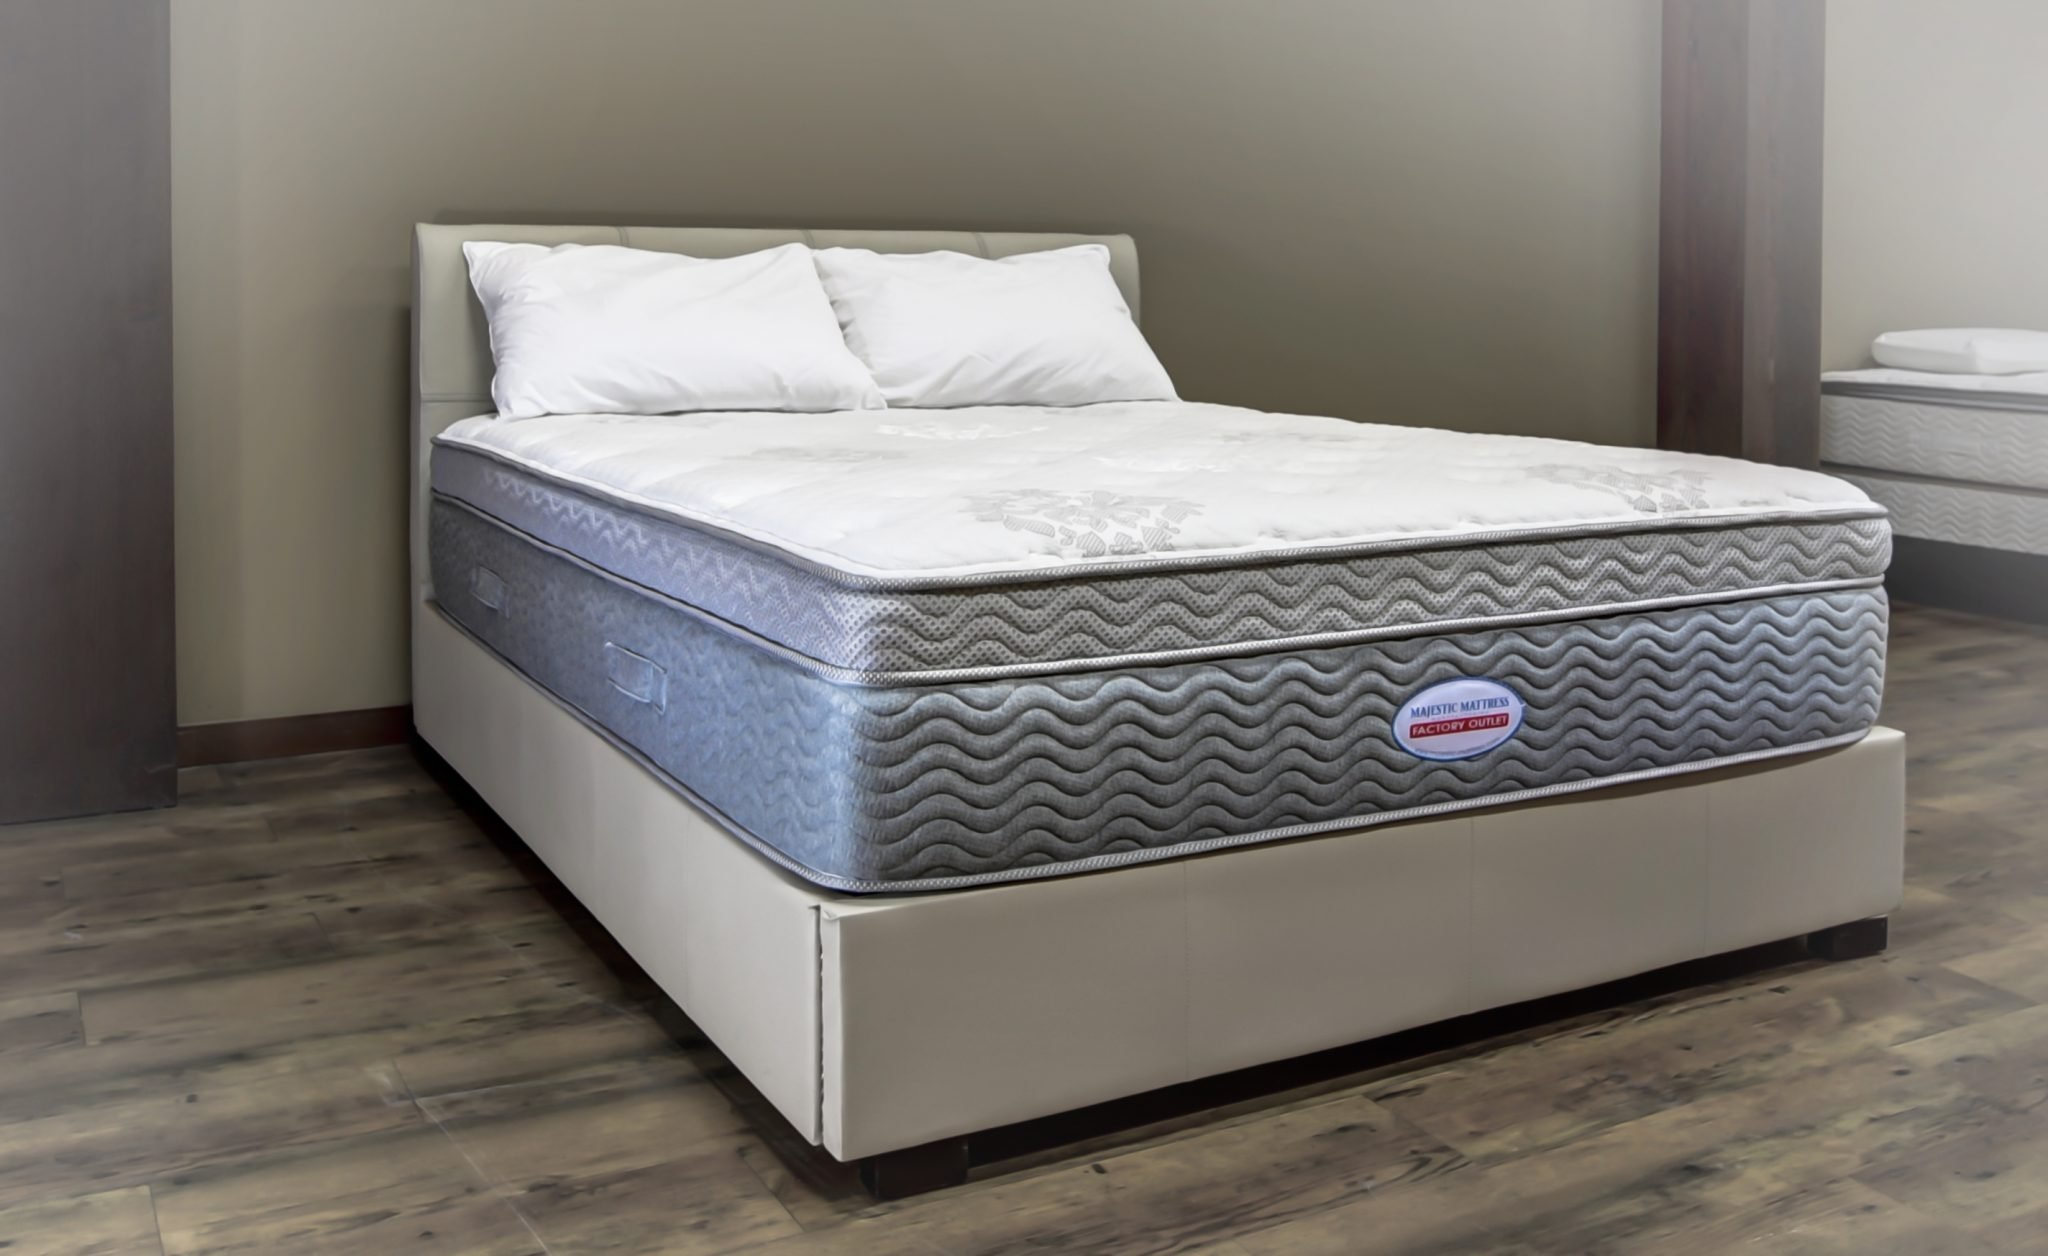 sevilla euro top | Majestic Mattress - Your Mattress Store & Bedroom Furniture Outlet